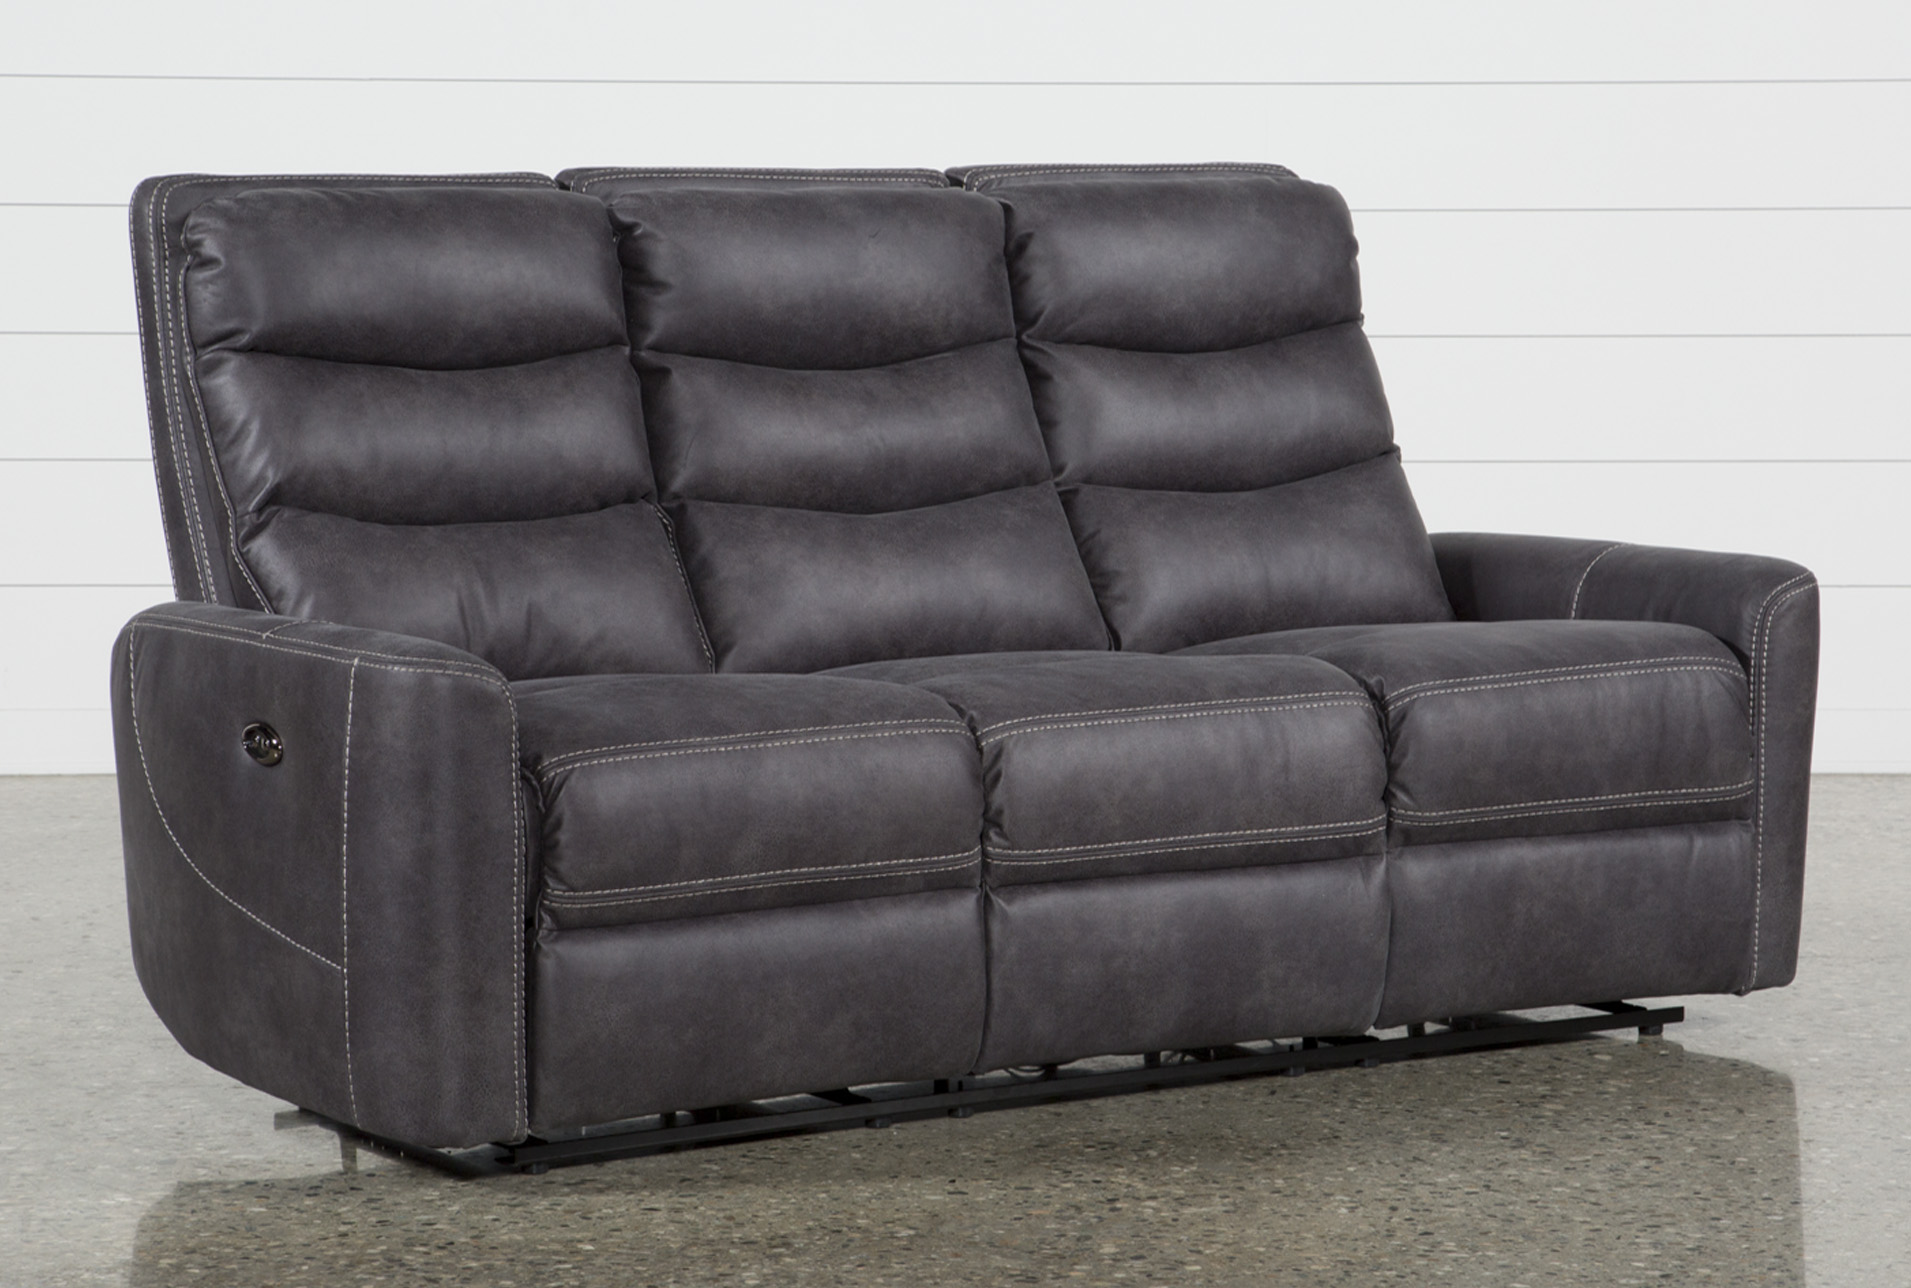 Malia Power Reclining Sofa With Usb (Qty: 1) has been successfully added to  your Cart.